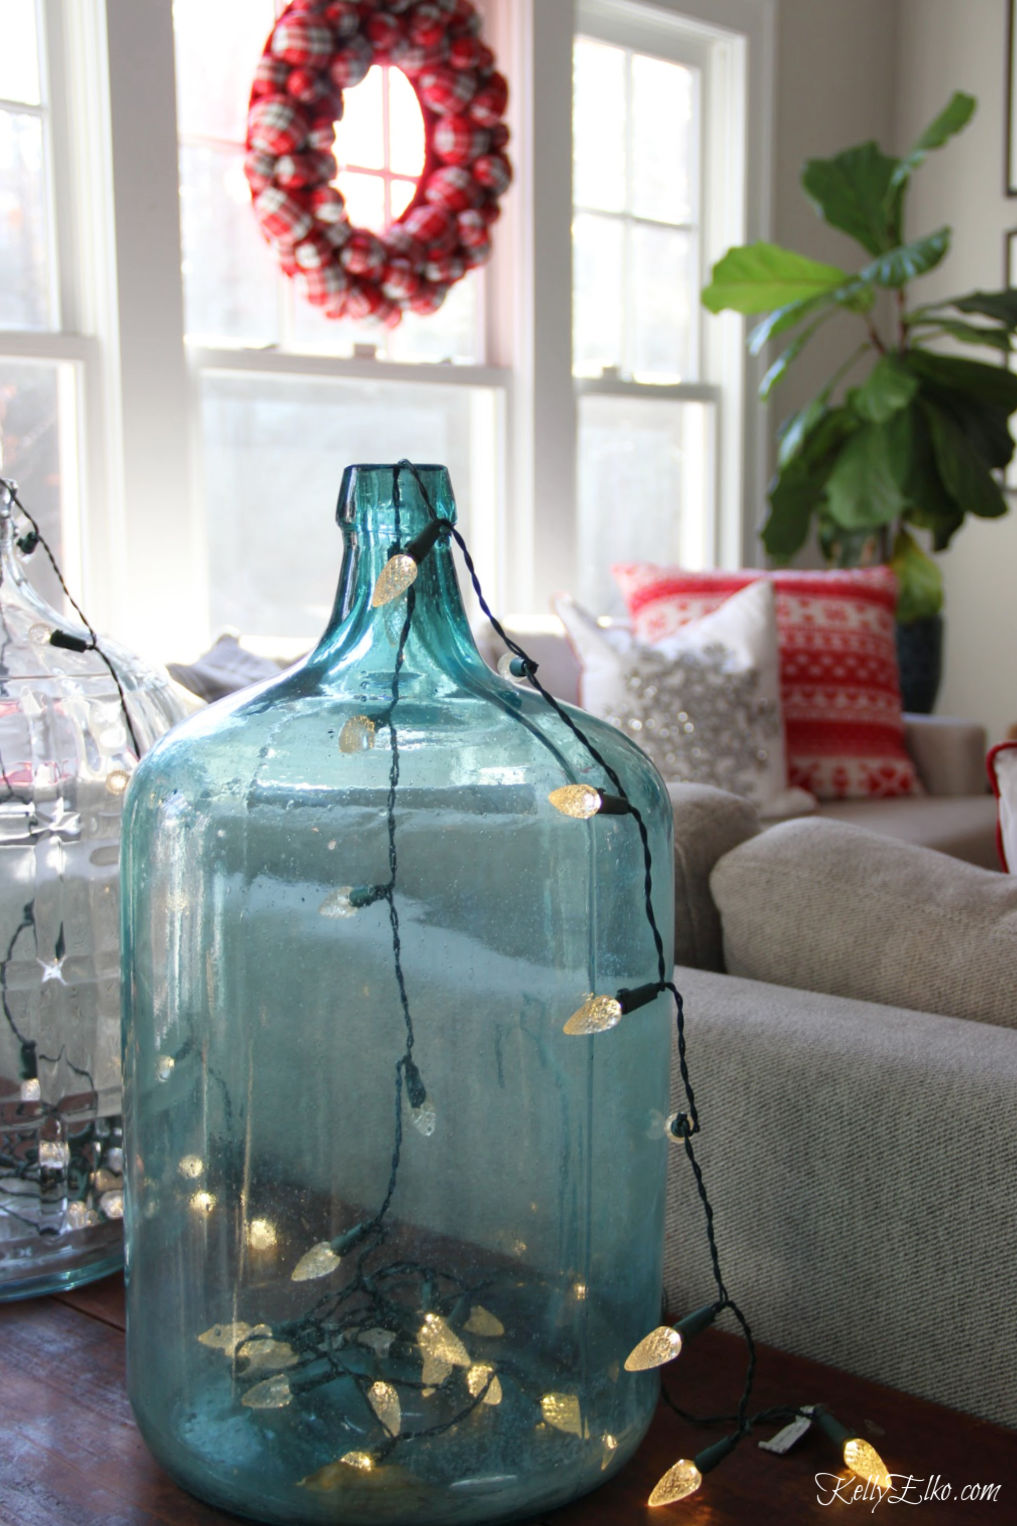 Christmas Home Tour - love this old glass jar filled with string lights kellyelko.com #christmas #christmasdecor #christmasdecorating #christmashome #christmastour #diychristmas #christmasideas #christmasmantel #christmastree #christmasornaments #vintagechristmas #farmhousechristmas #colorfulchristmas #creativechristmas #kellyelko #christmaslights #diychristmas